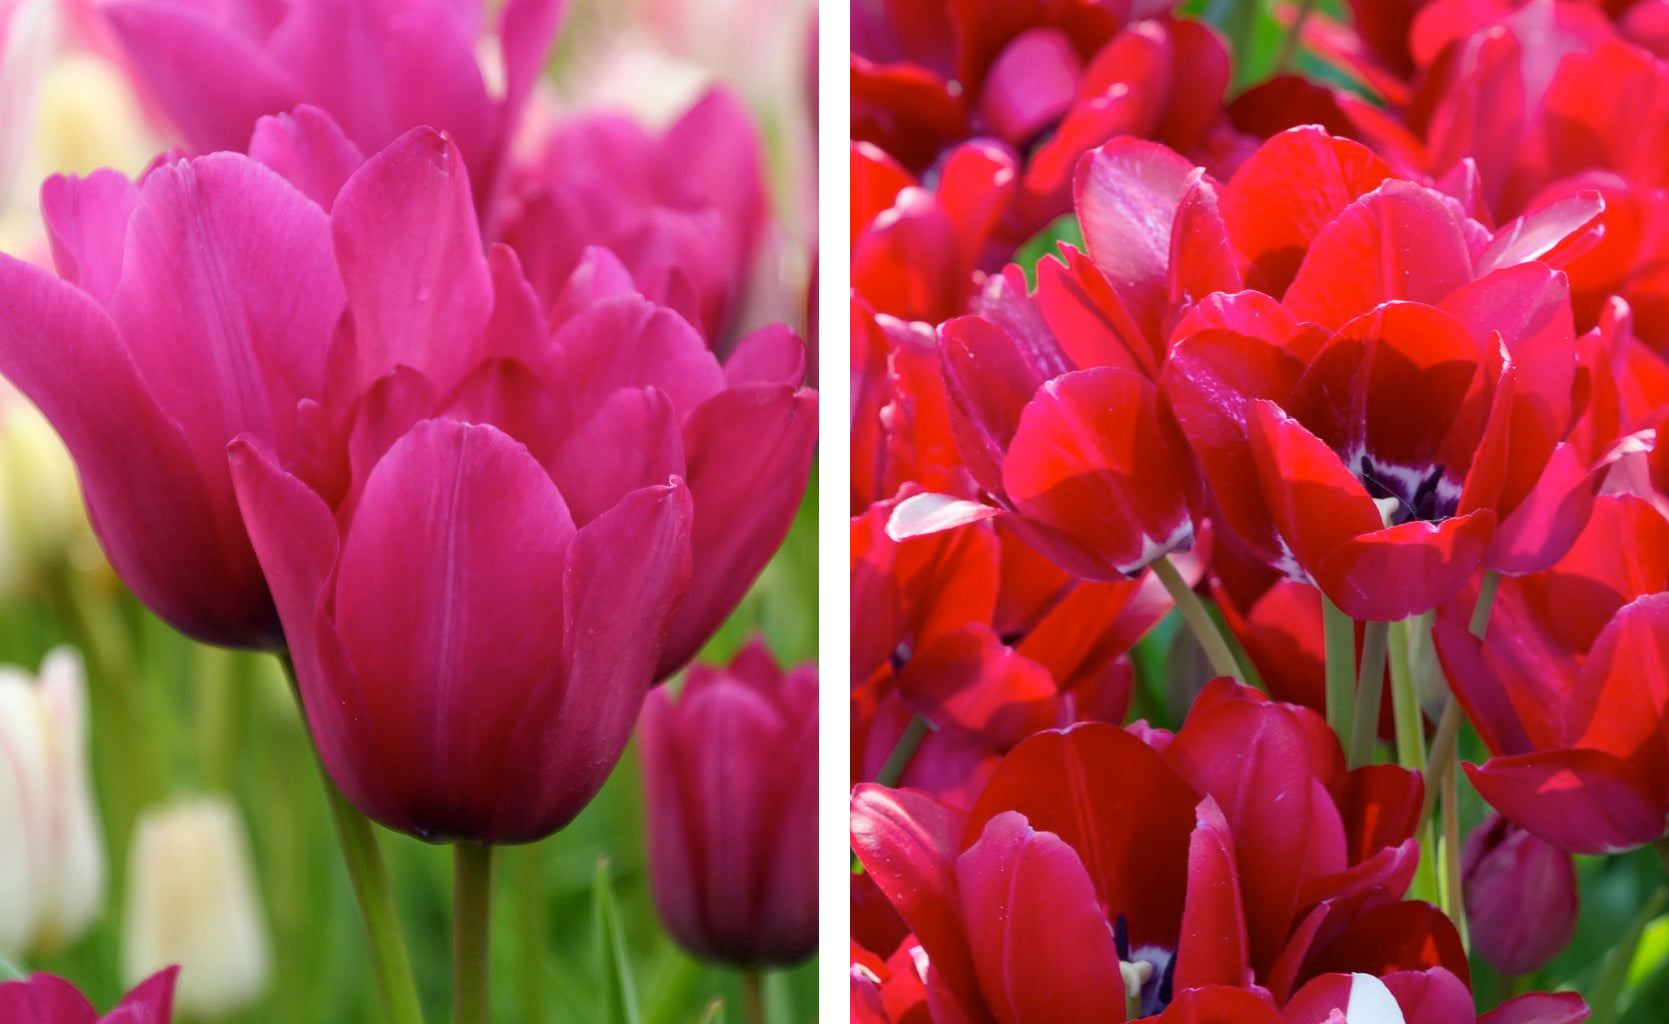 Multi-flowering tulip bulbs